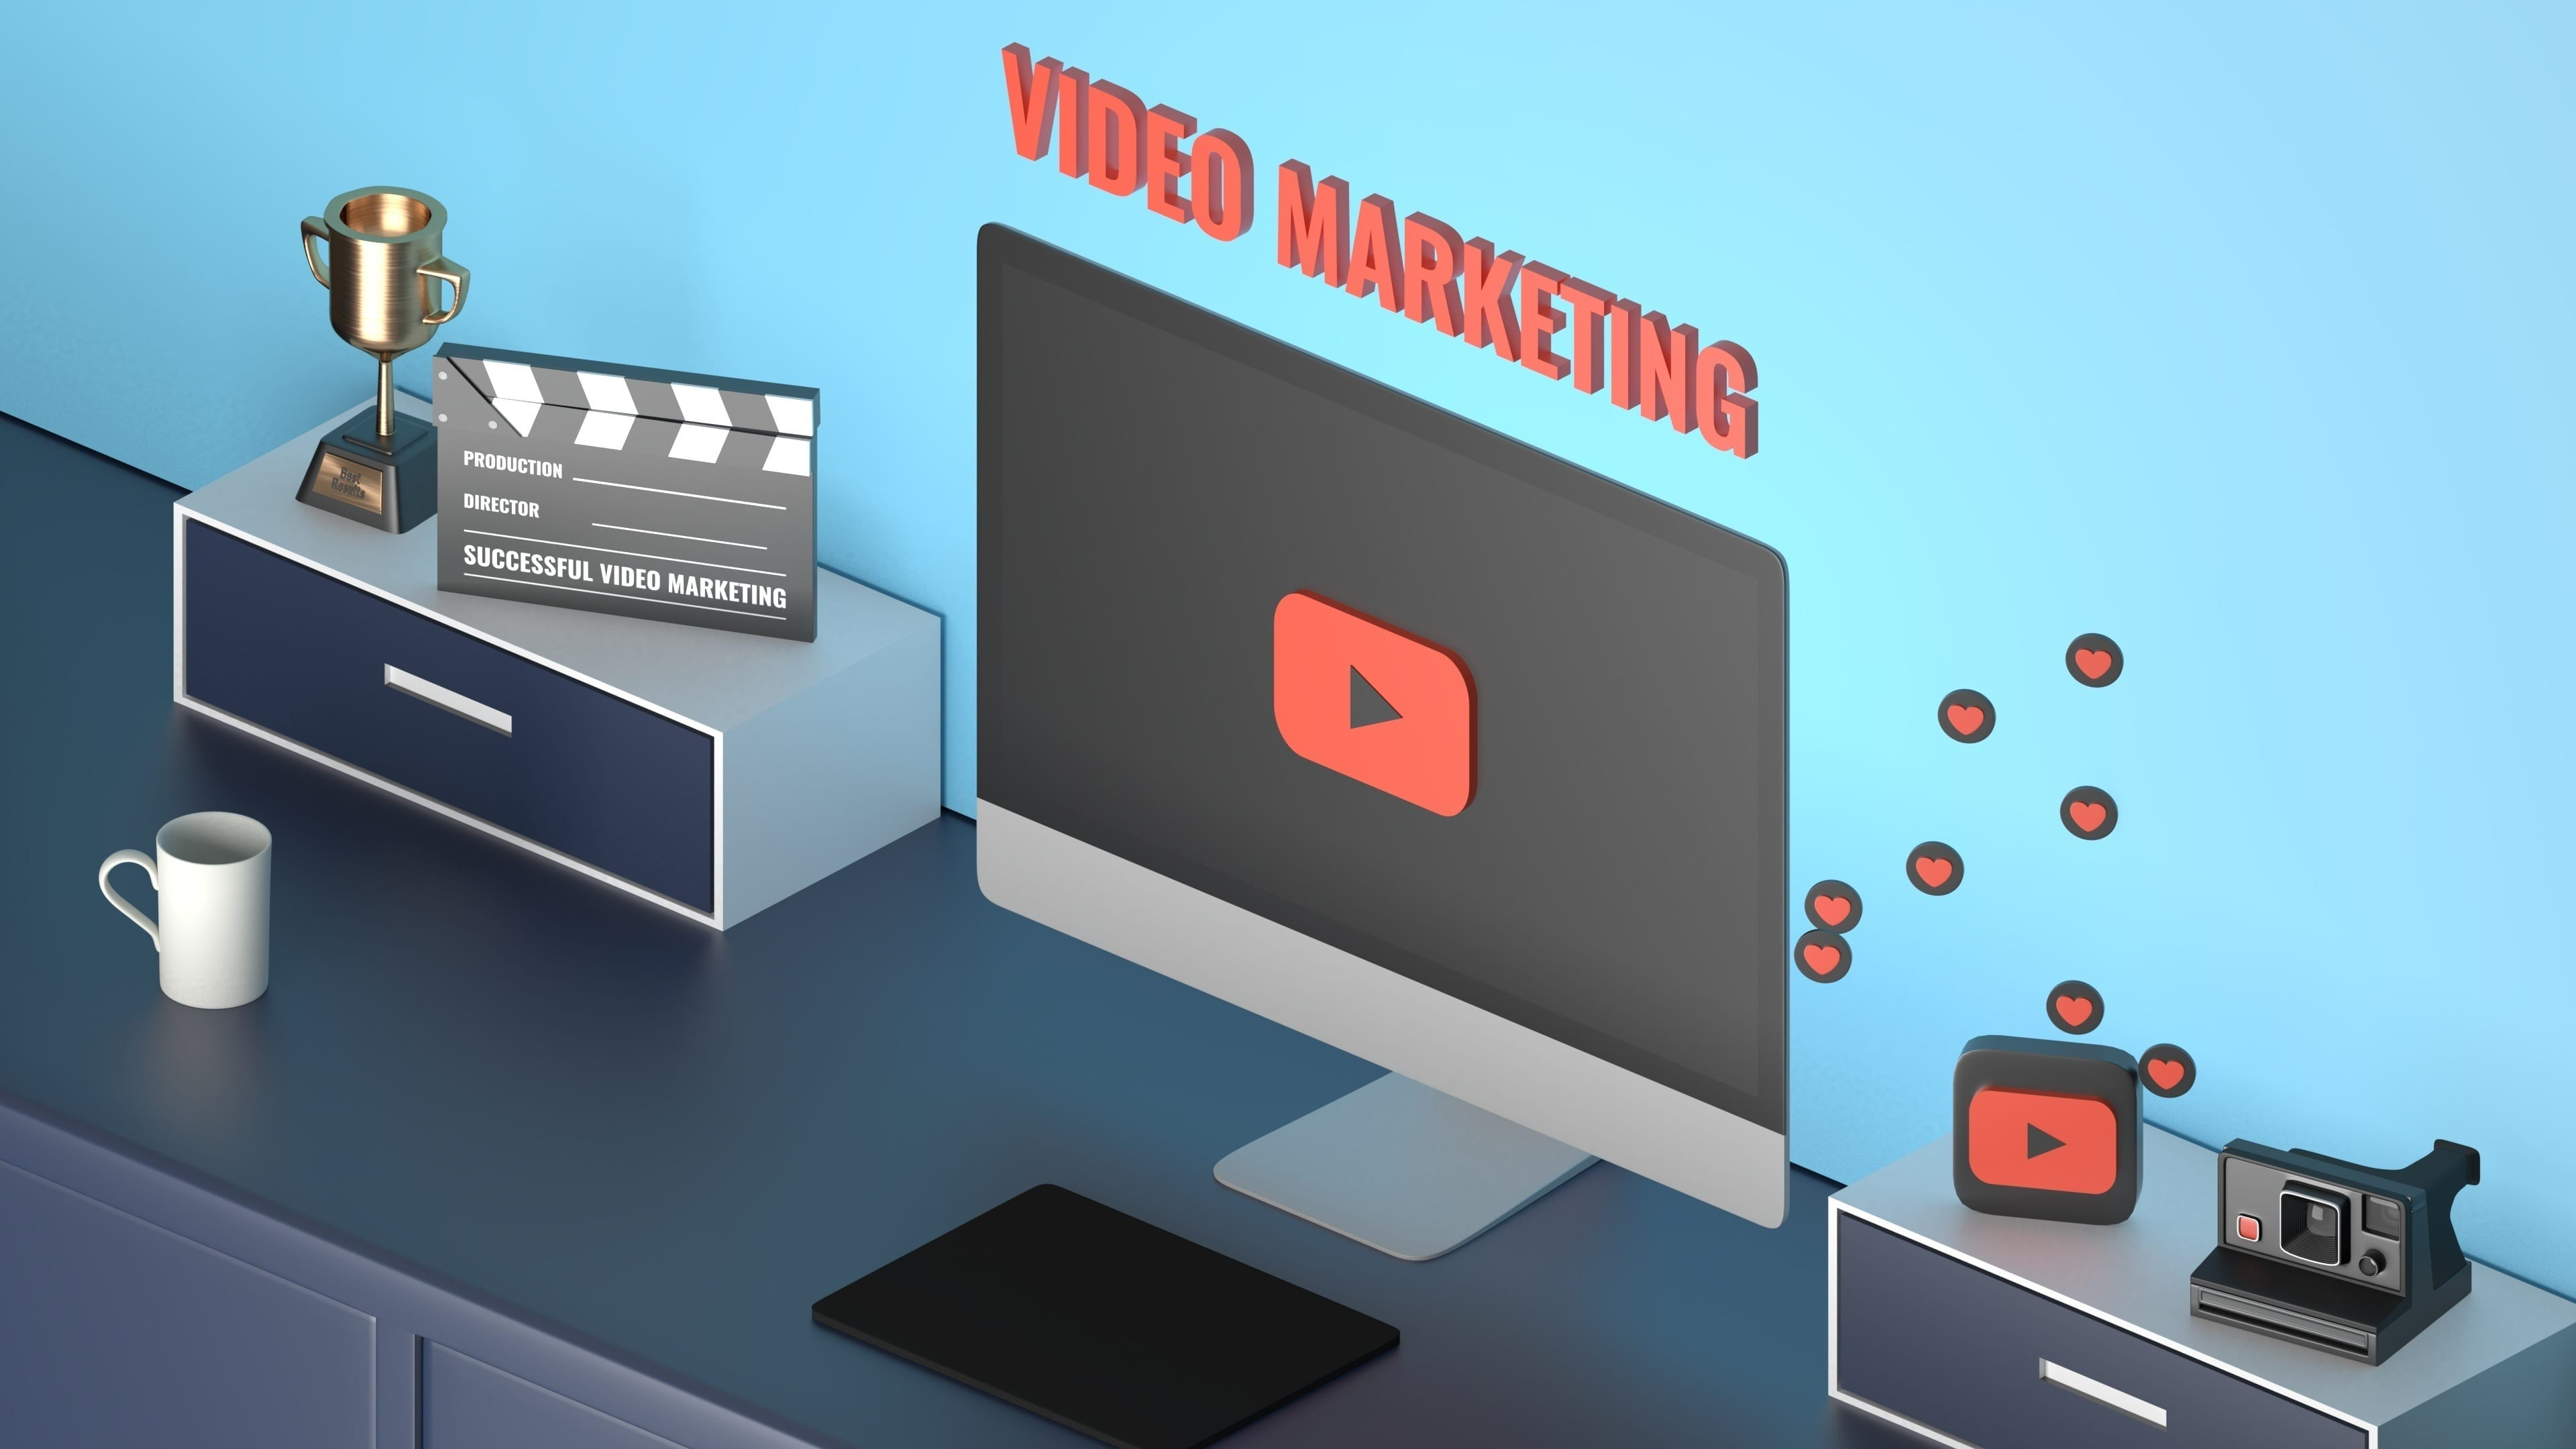 The gist of video marketing